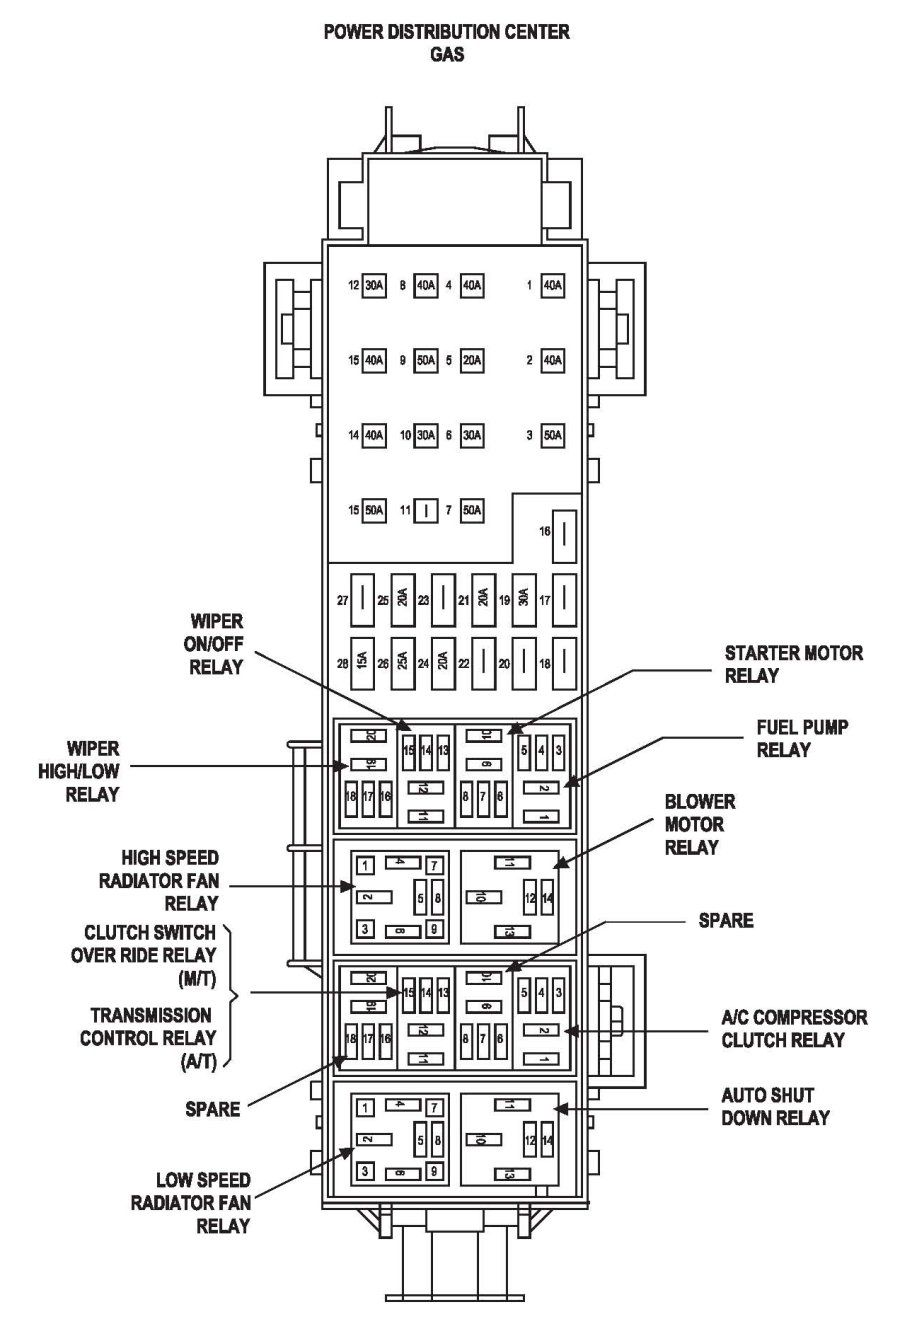 b3536c3739783eb19f827744cc42c3c4 jeep liberty fuse box diagram image details jeep liberty Fuse Box Diagram at gsmx.co